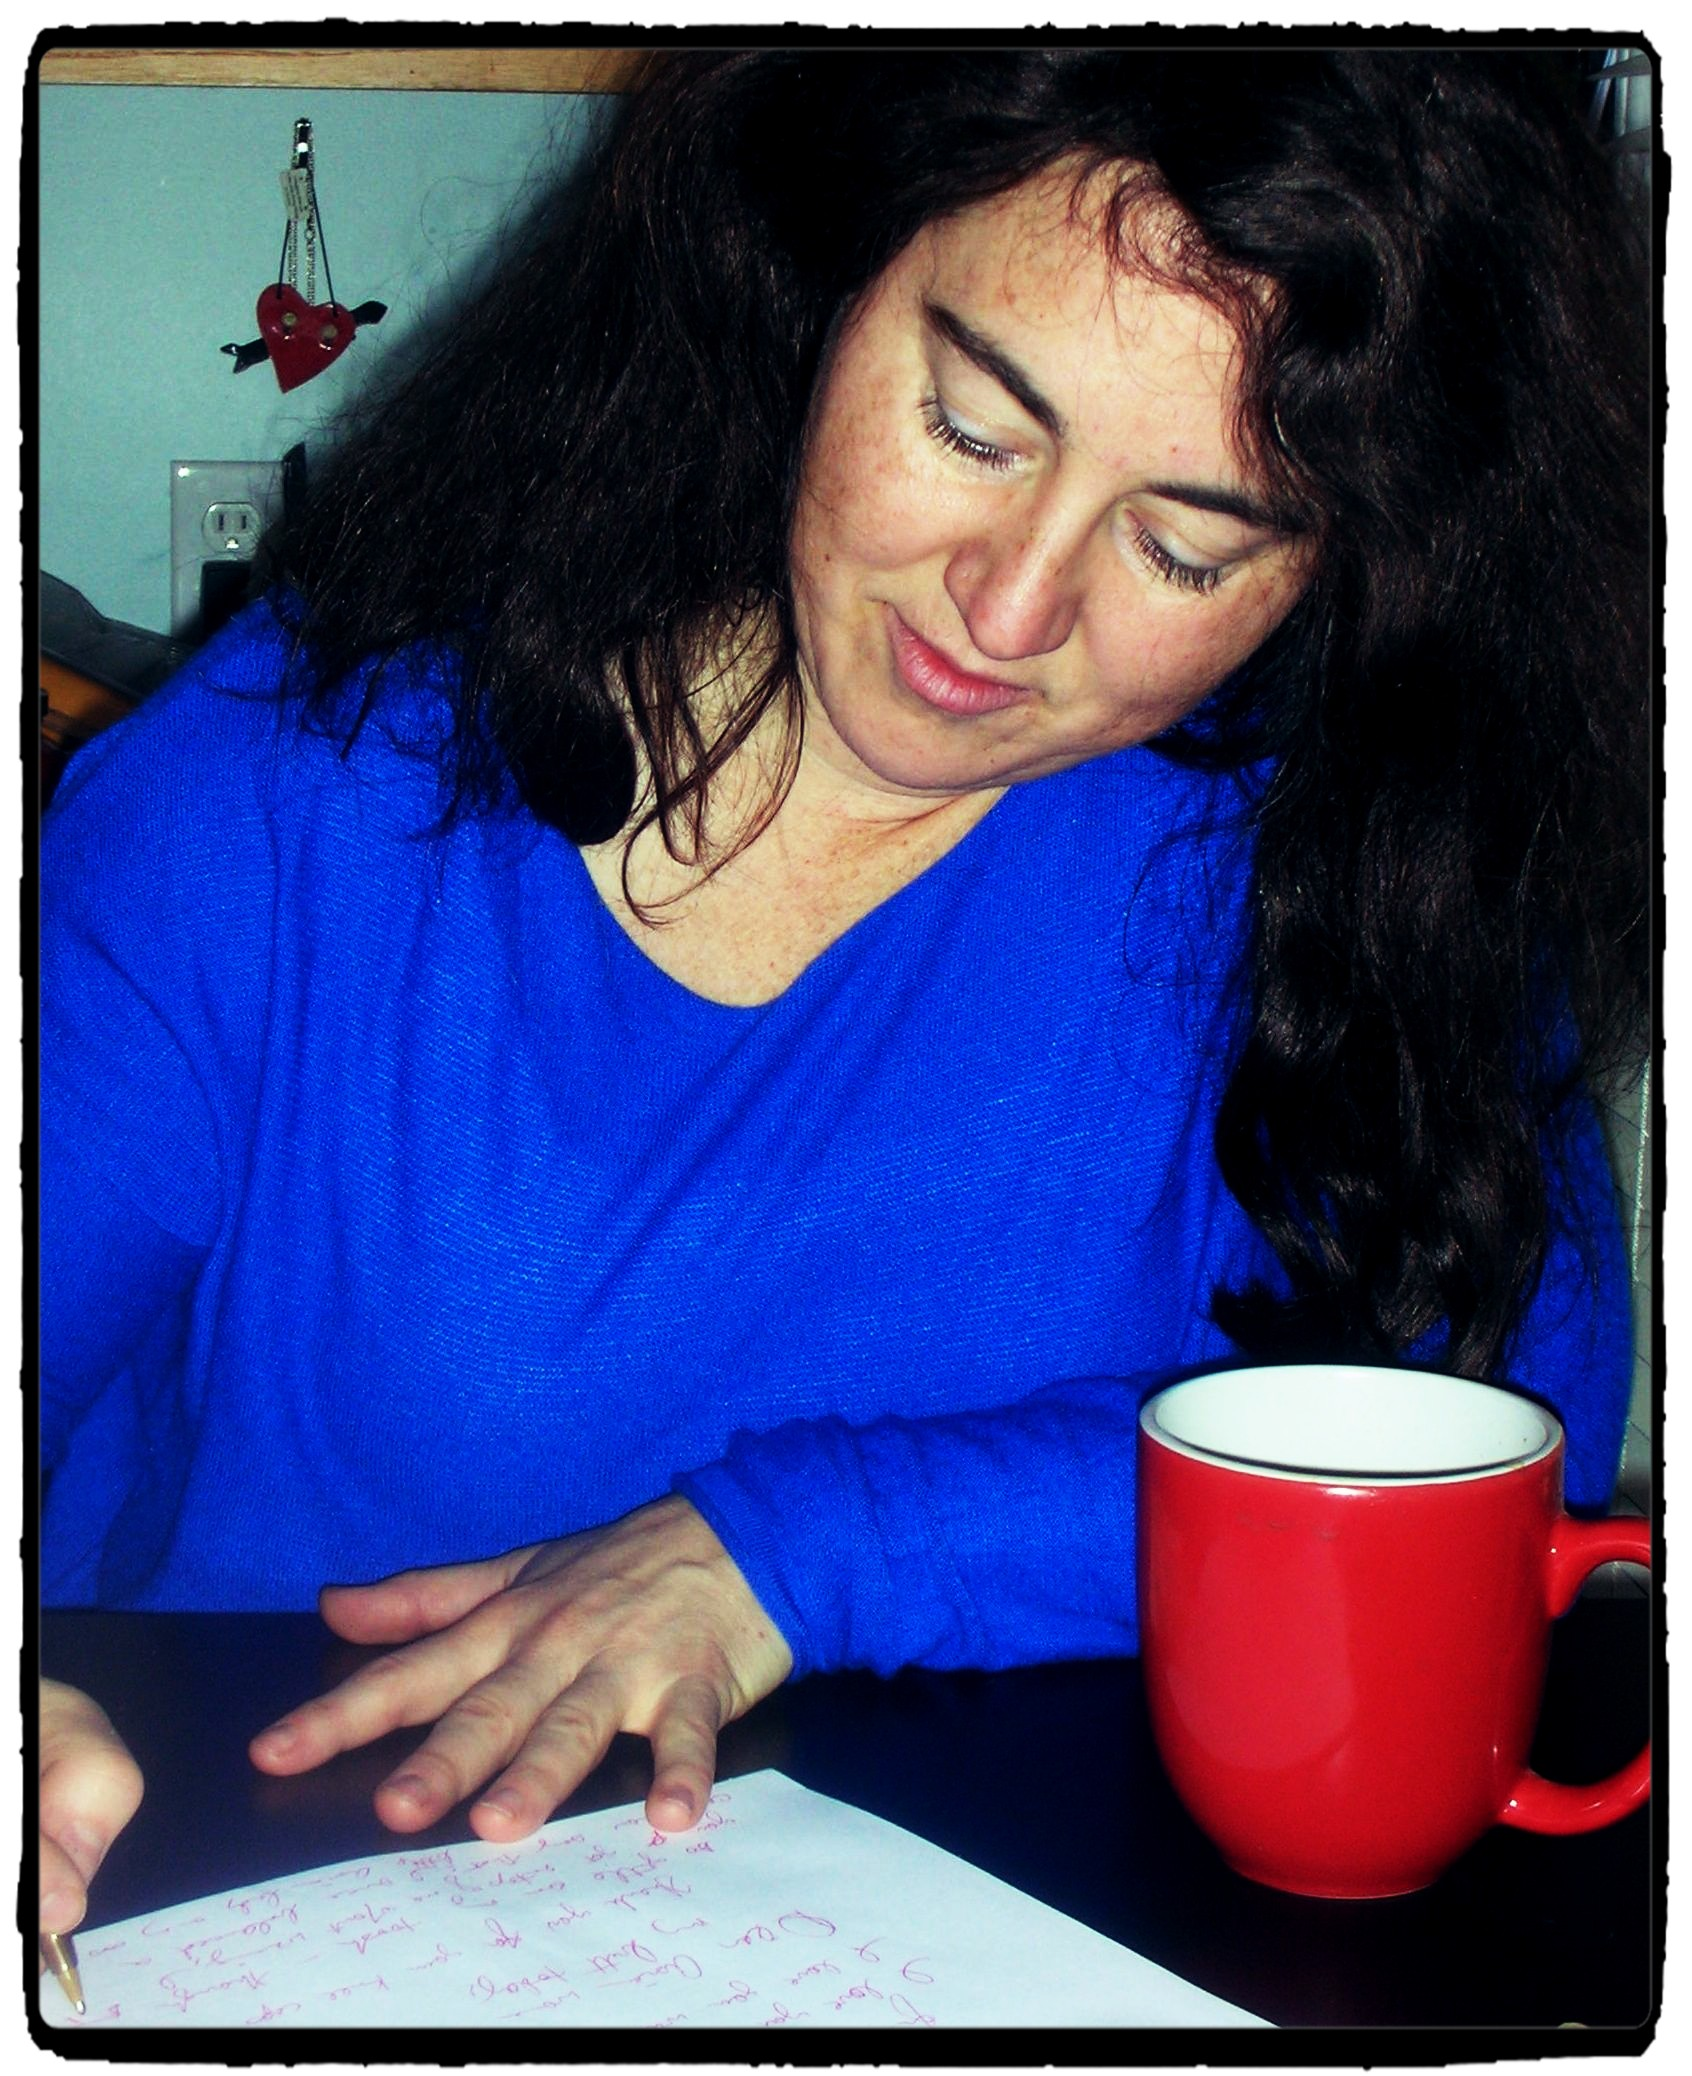 A woman writes on a piece of paper in front of her. There is a coffee mug on the table